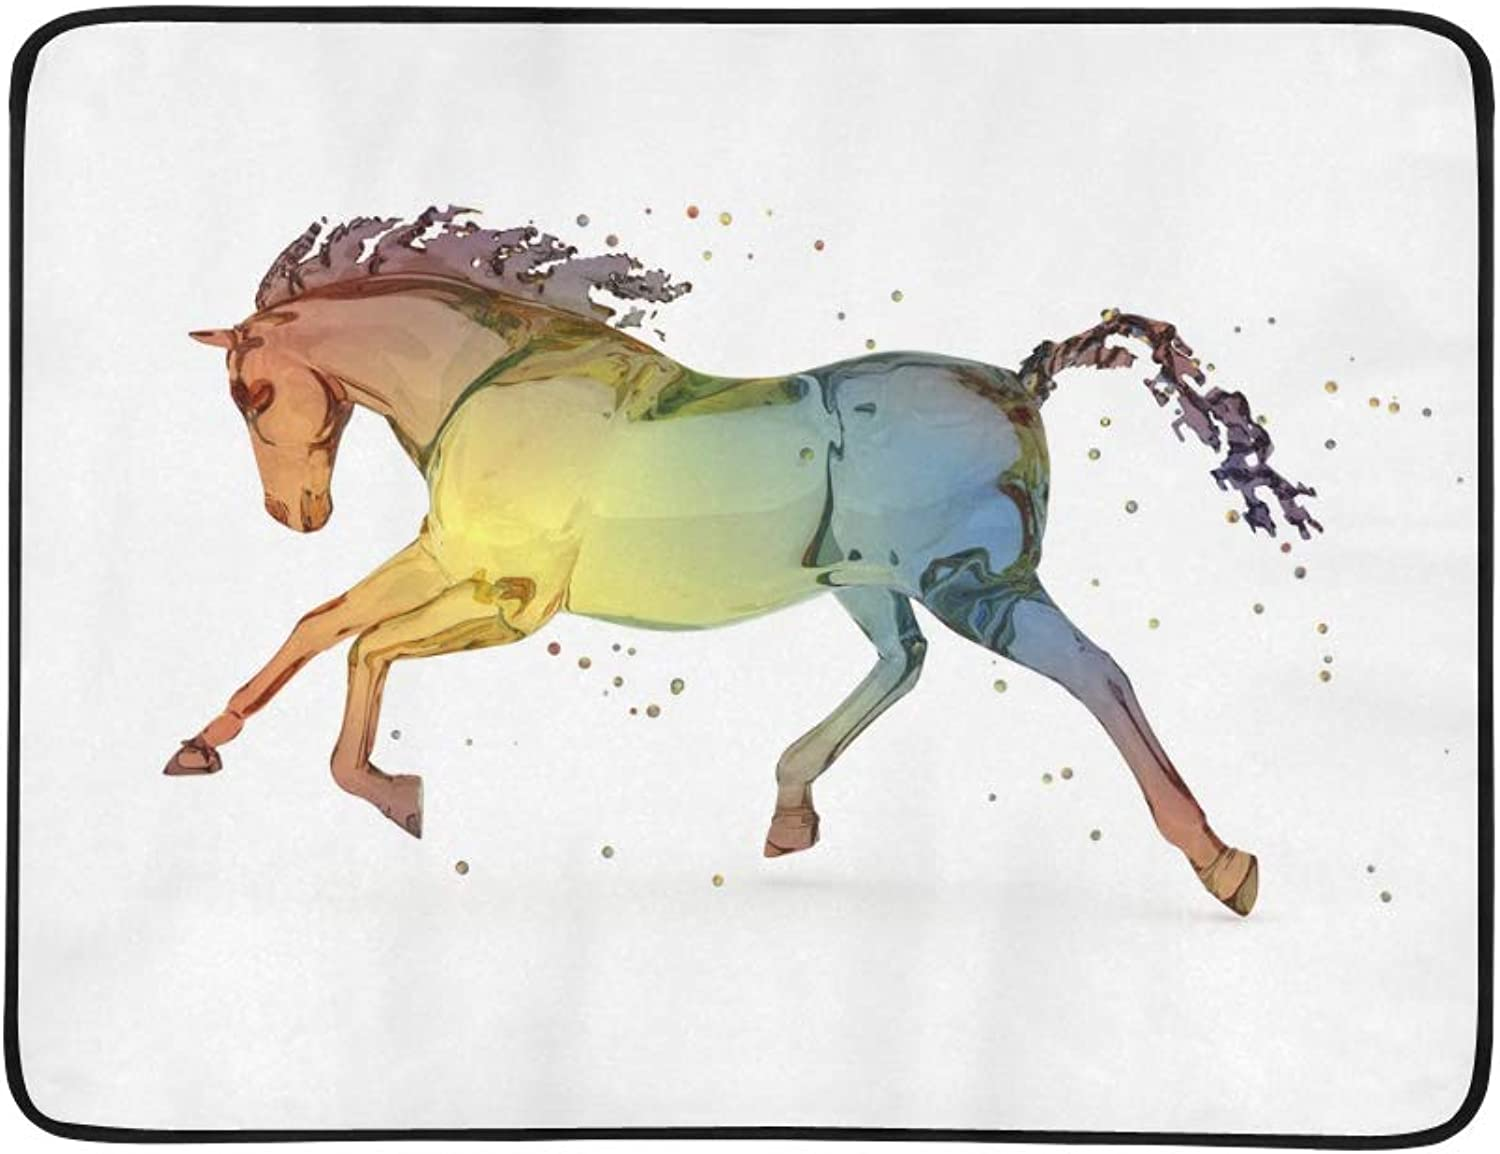 Rainbow Water Running White Horse in Flowers Pattern Portable and Foldable Blanket Mat 60x78 Inch Handy Mat for Camping Picnic Beach Indoor Outdoor Travel